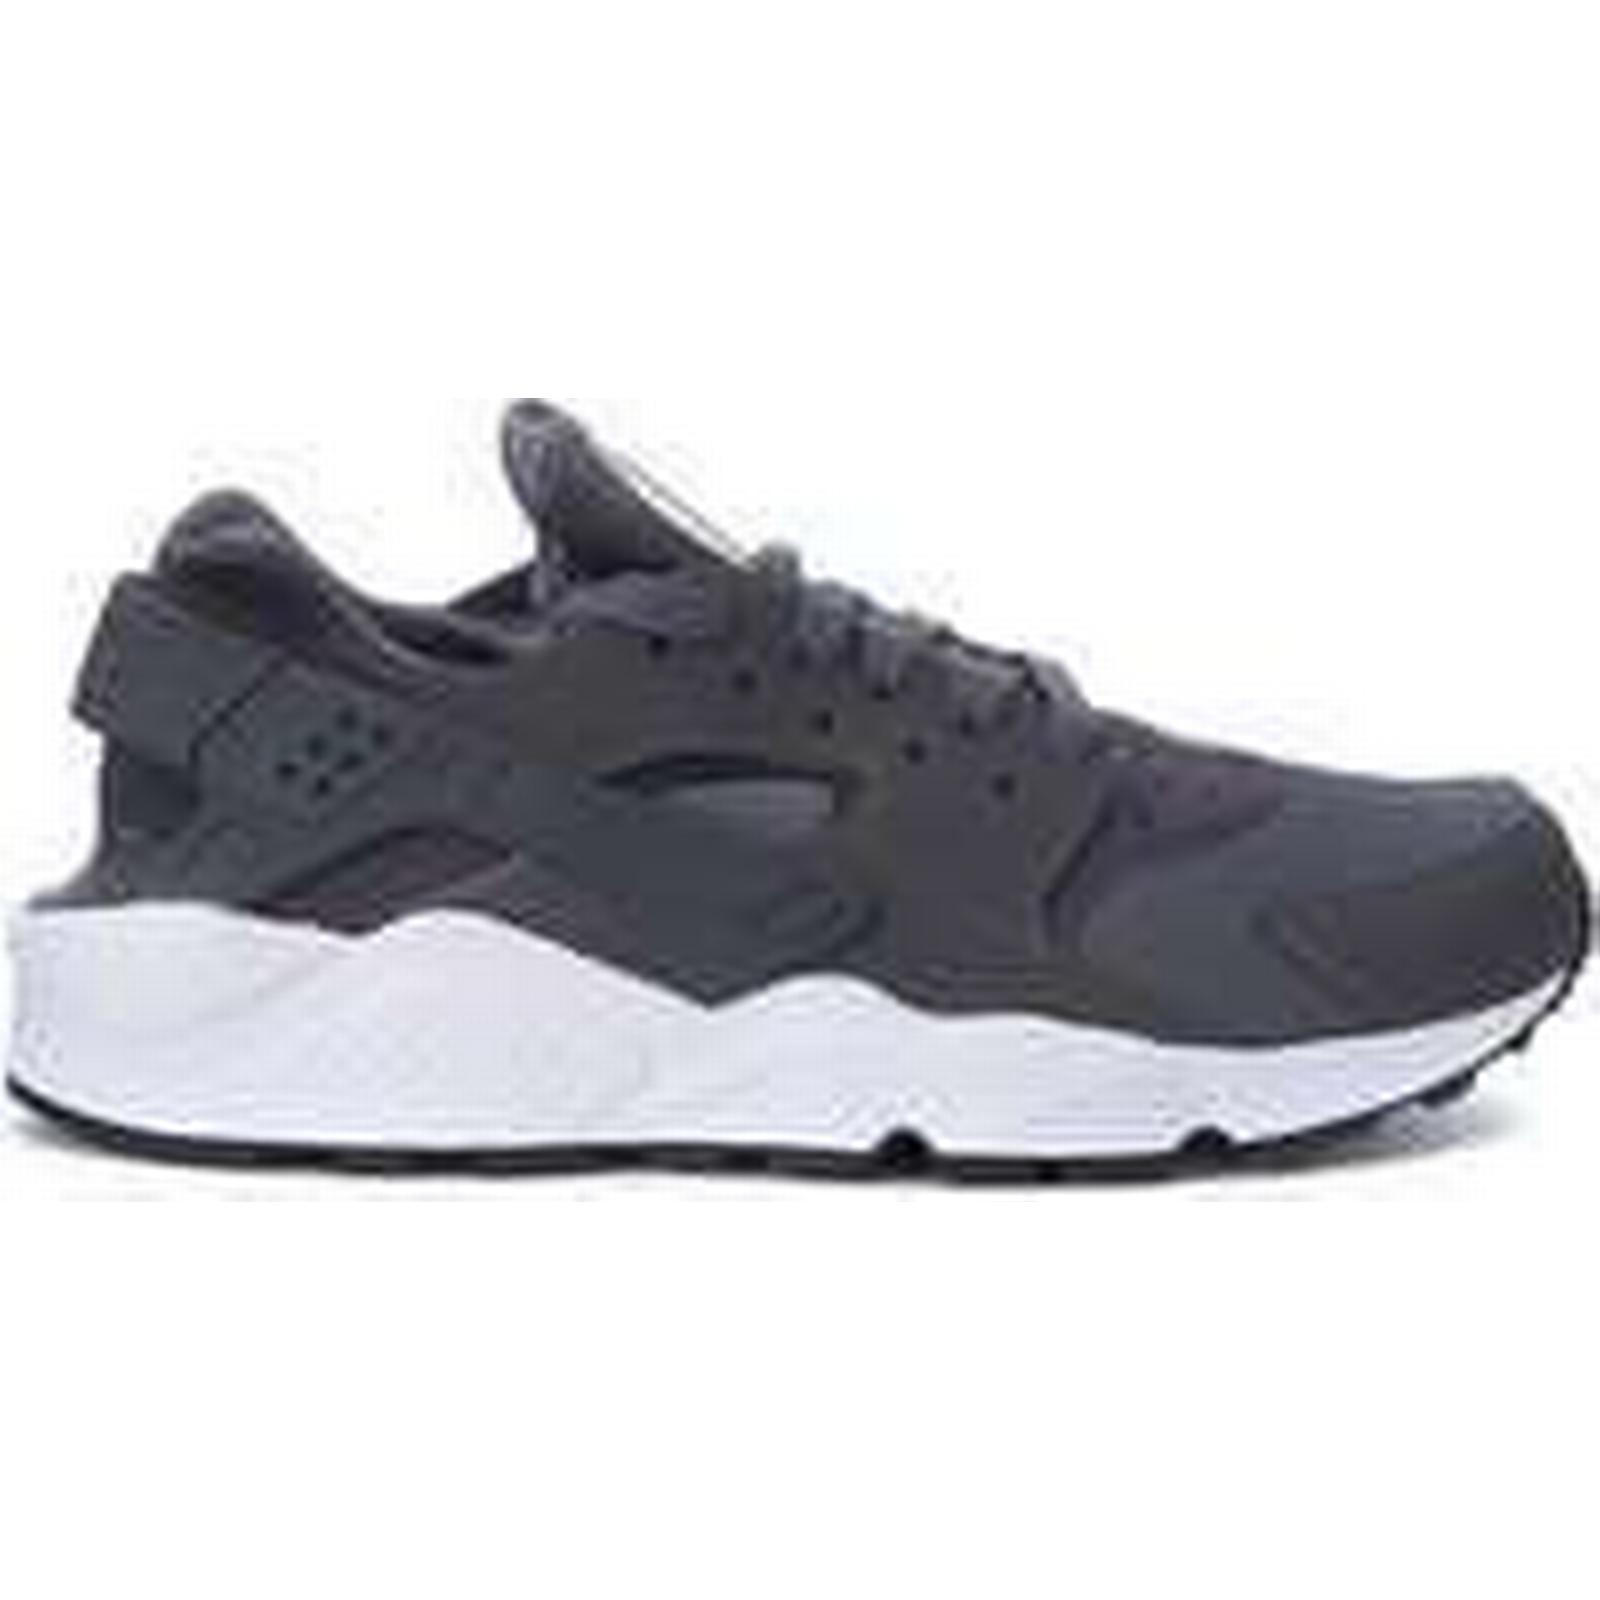 Spartoo.co.uk Nike Air Huarache grey in sneaker women's Shoes (Trainers) in grey Multicolour acd042